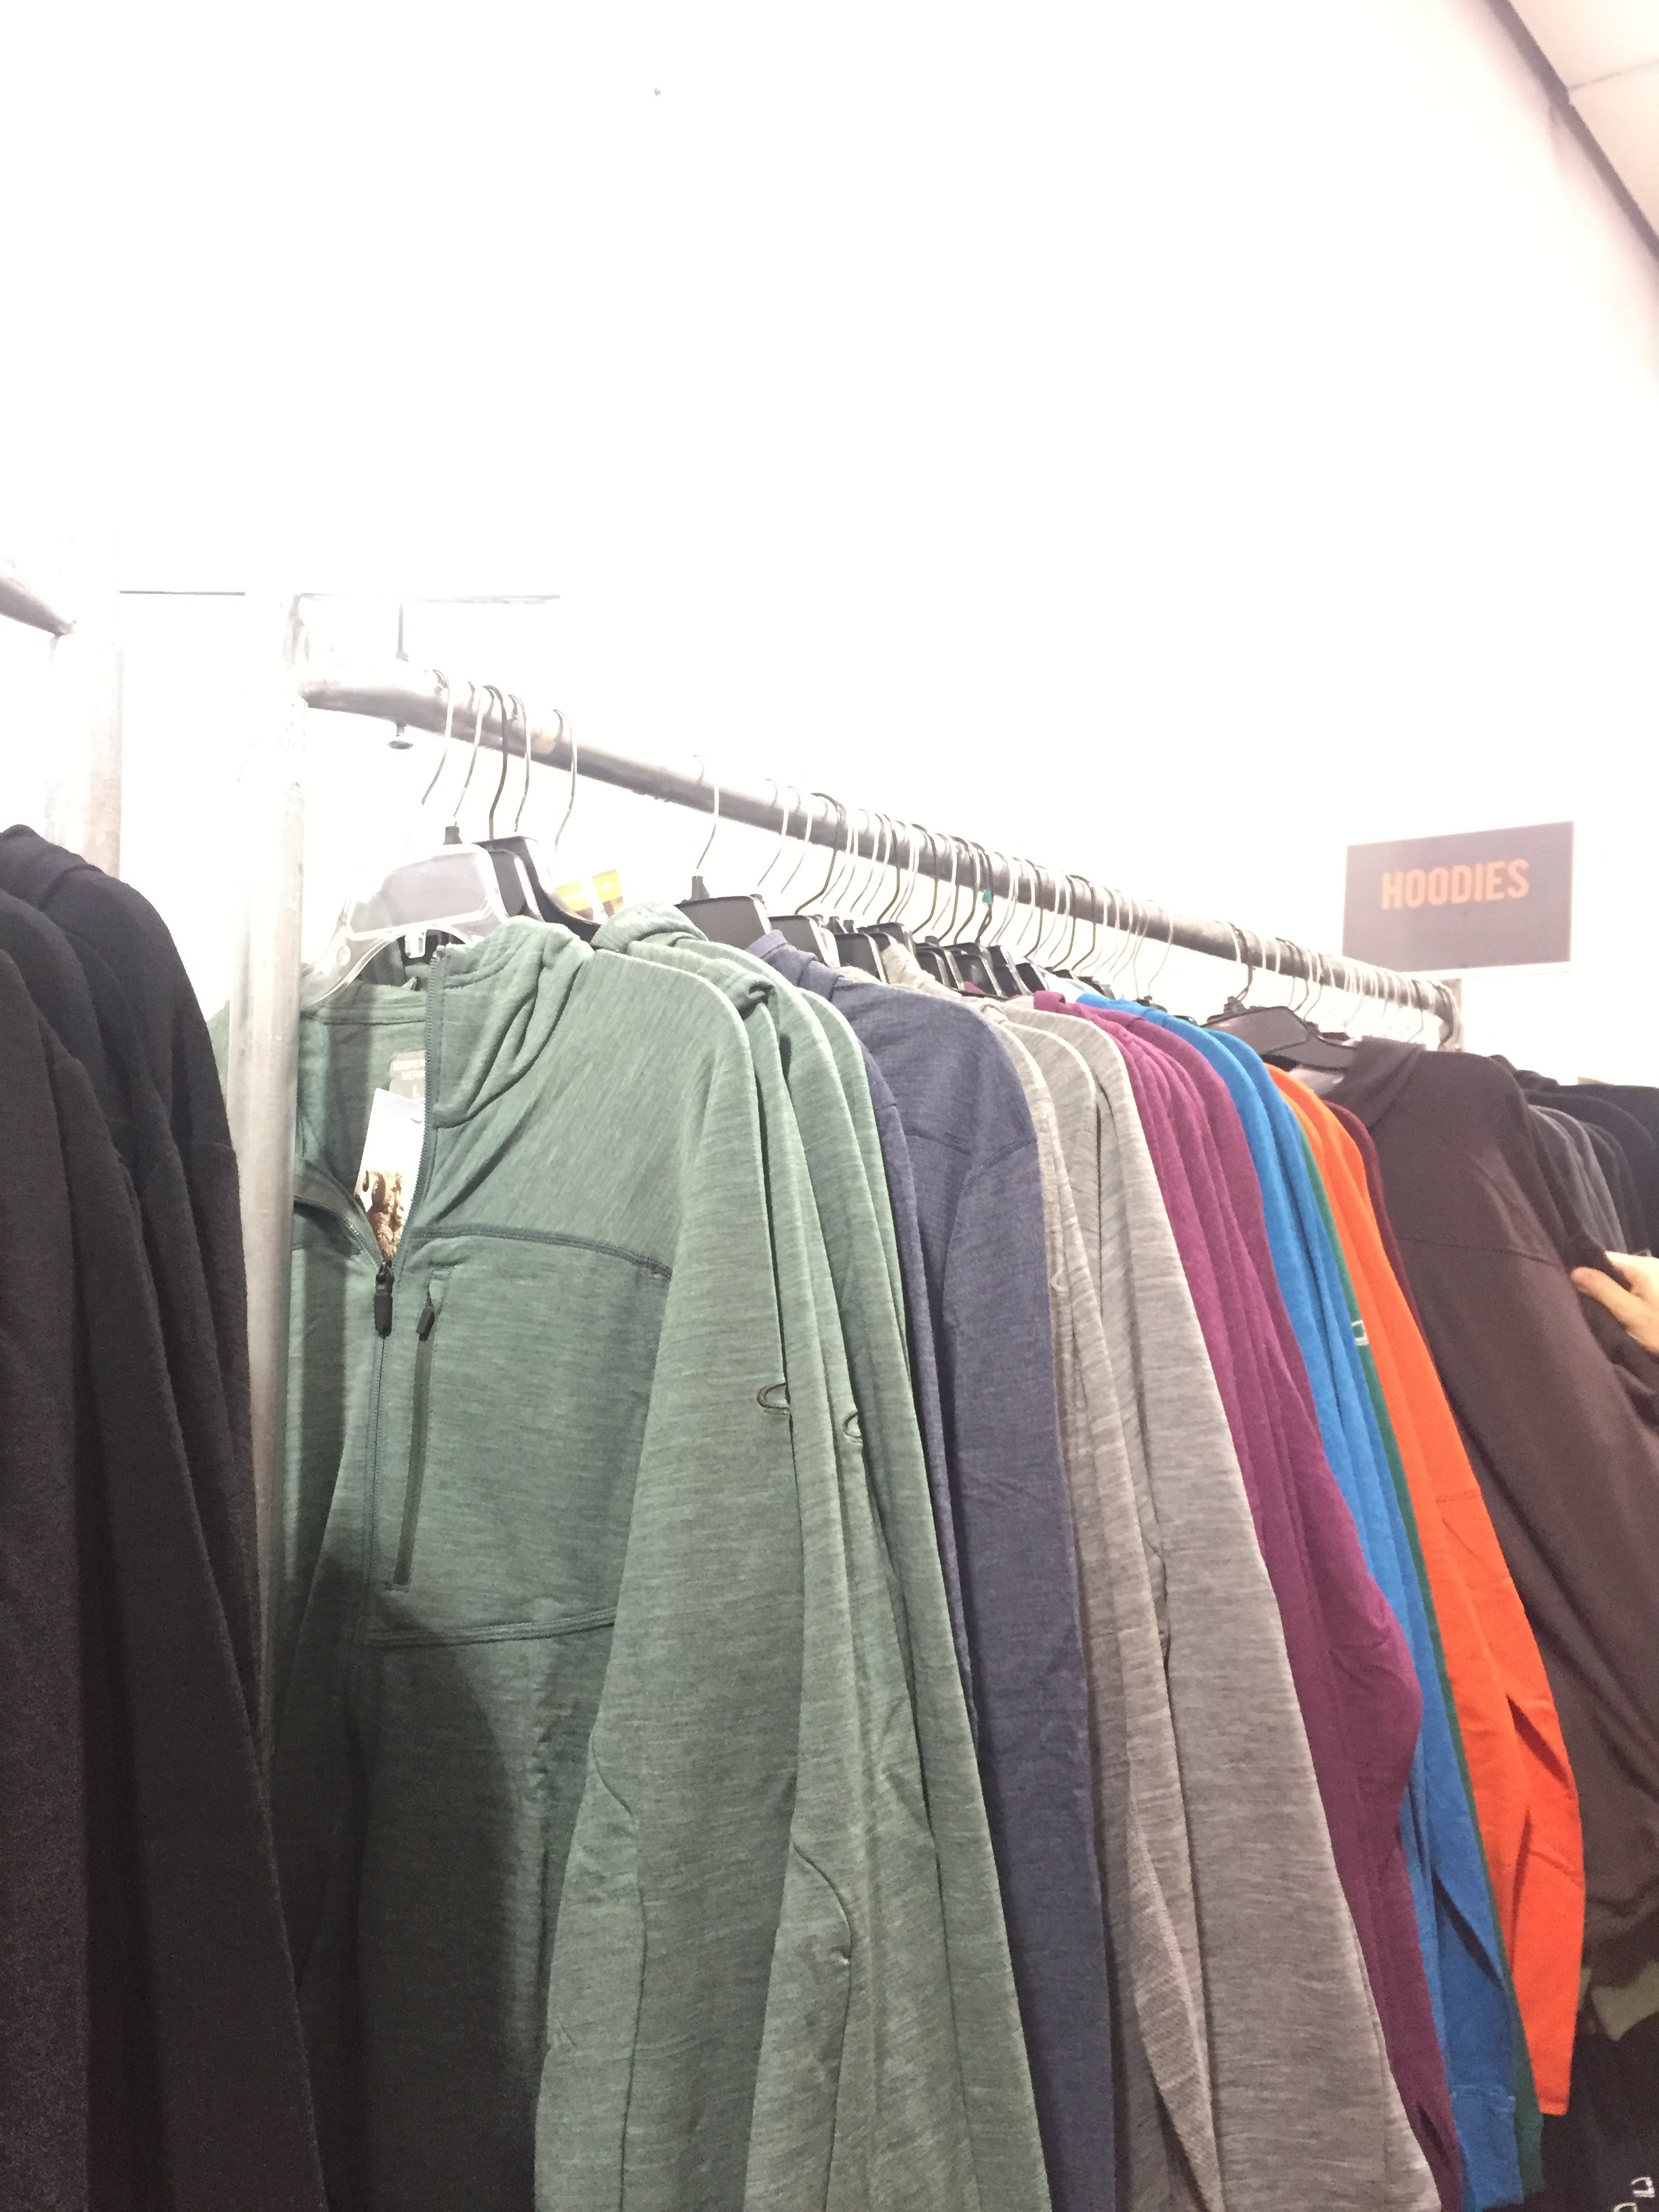 085dc685485 The Icebreaker Sample Sale Reduced Prices on Its Activewear ...